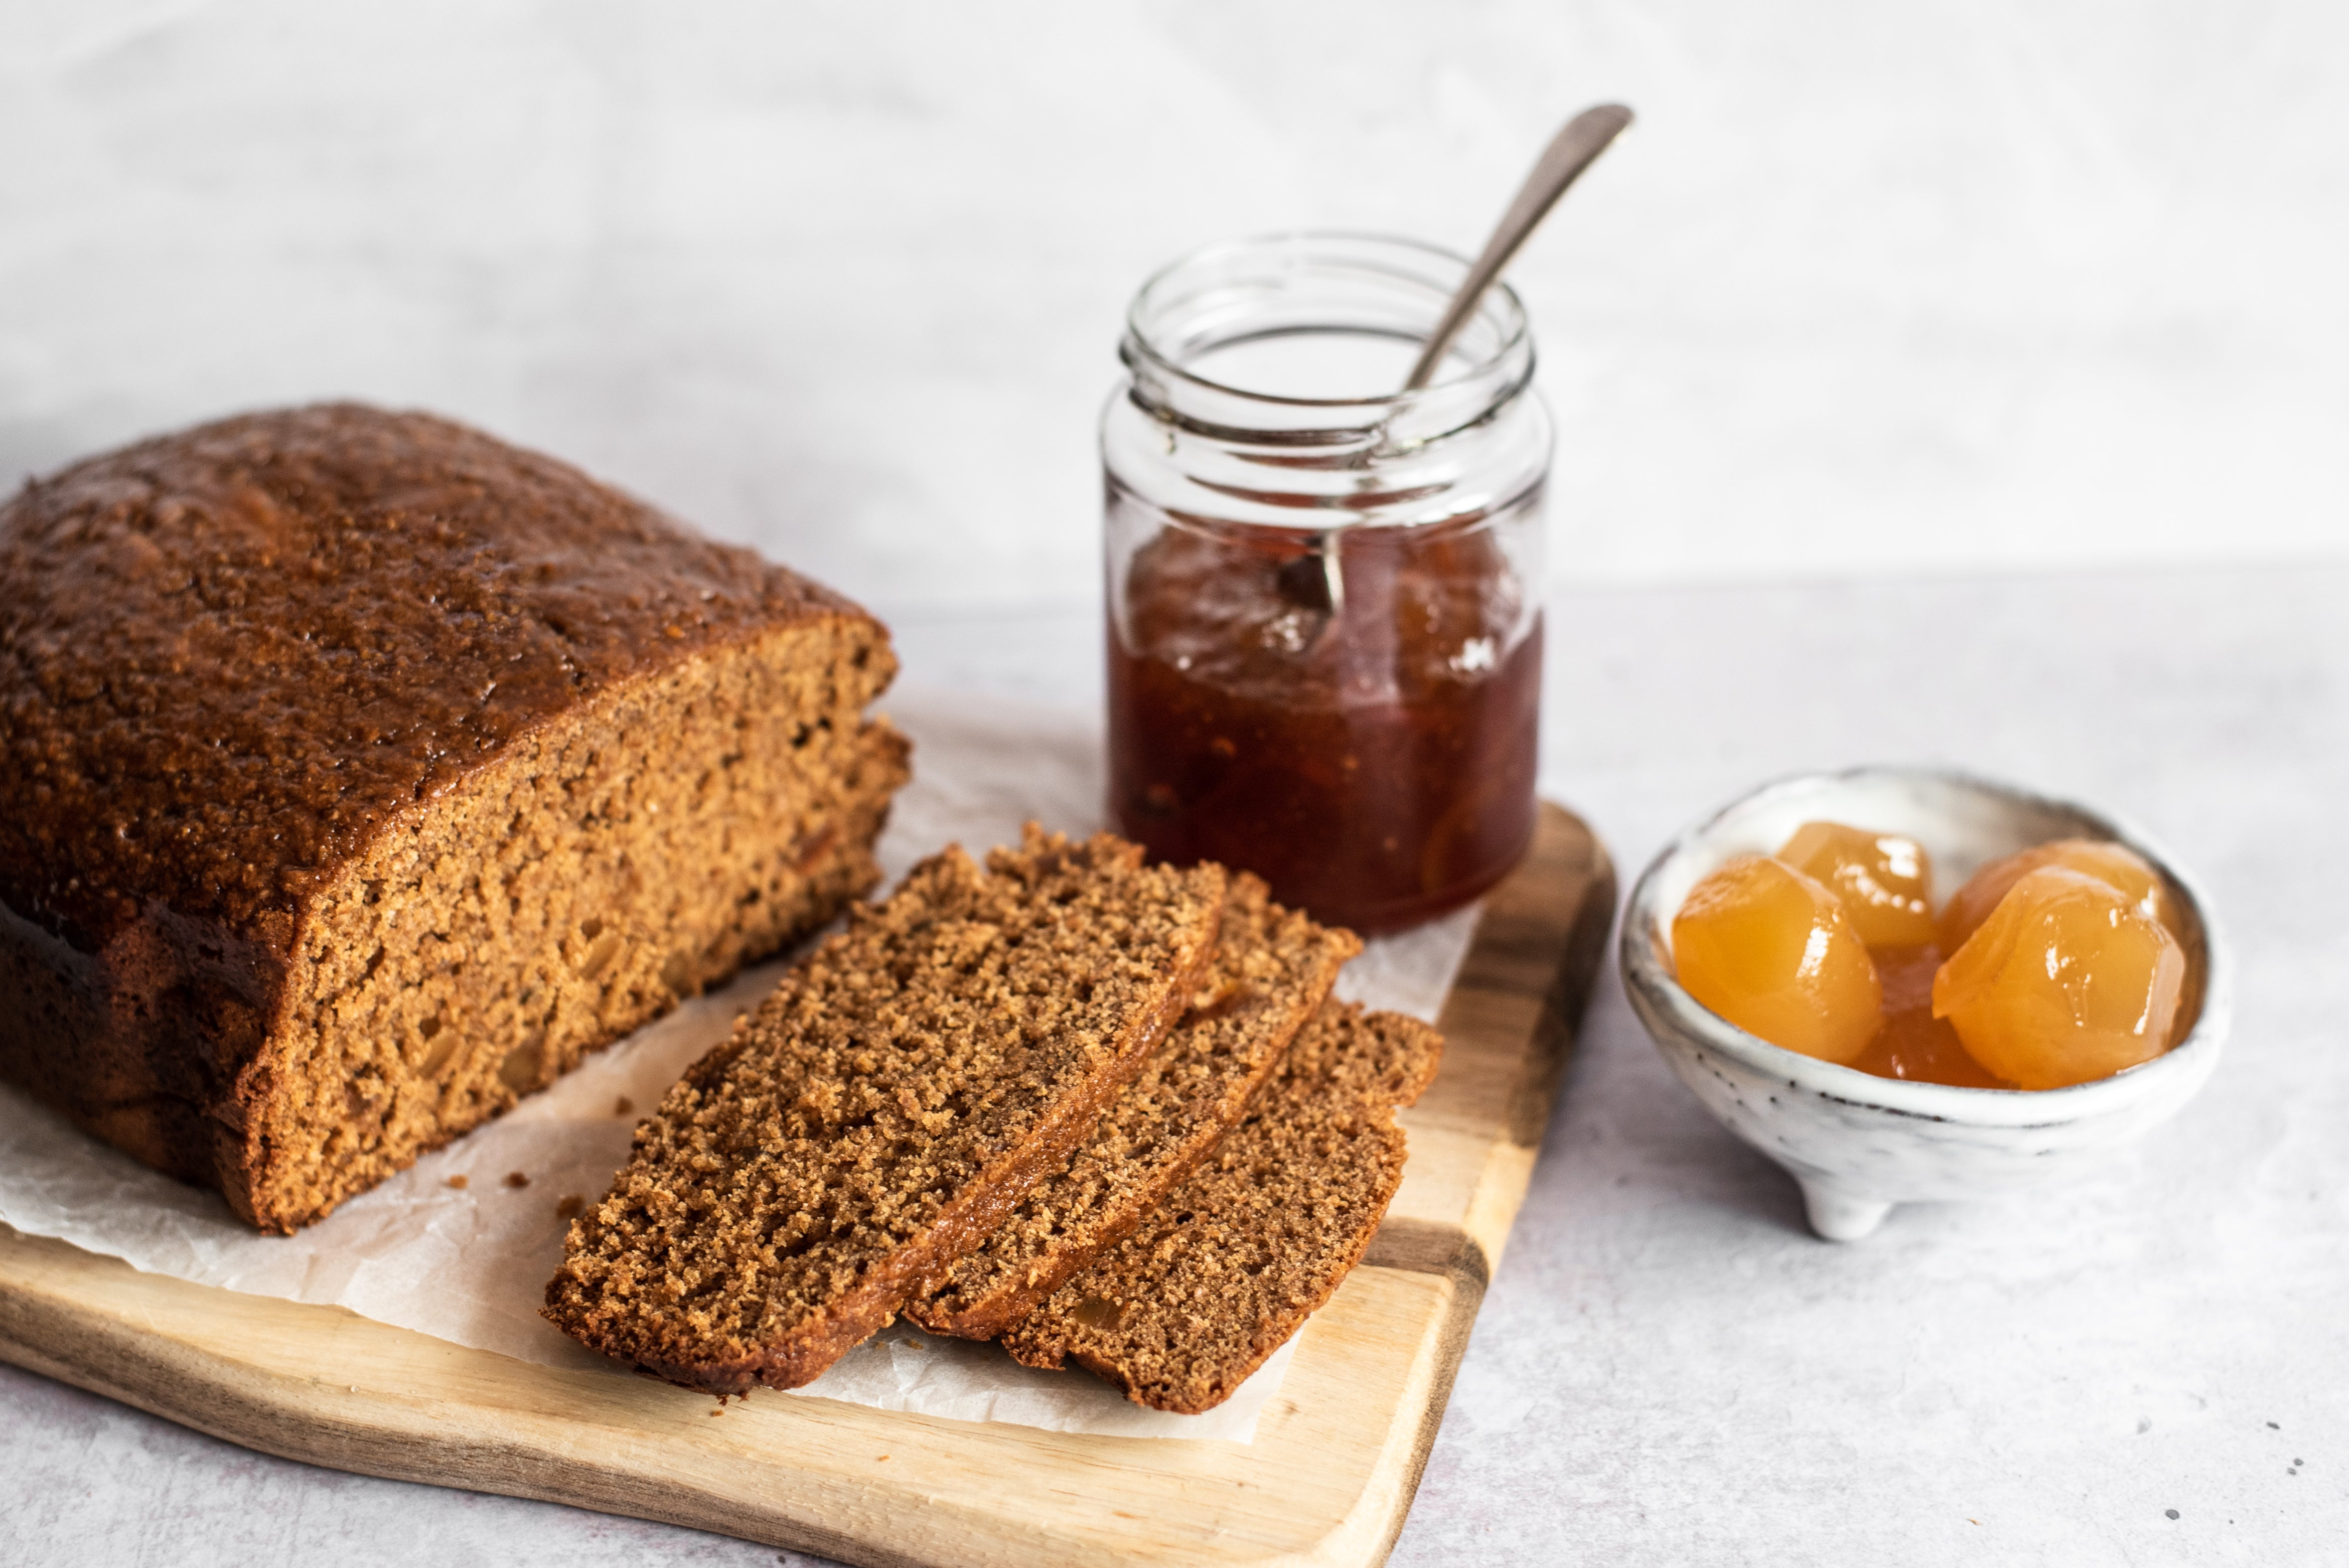 Gingerbread loaf on bread board, three slices infront, ginger in bowl and marmalade